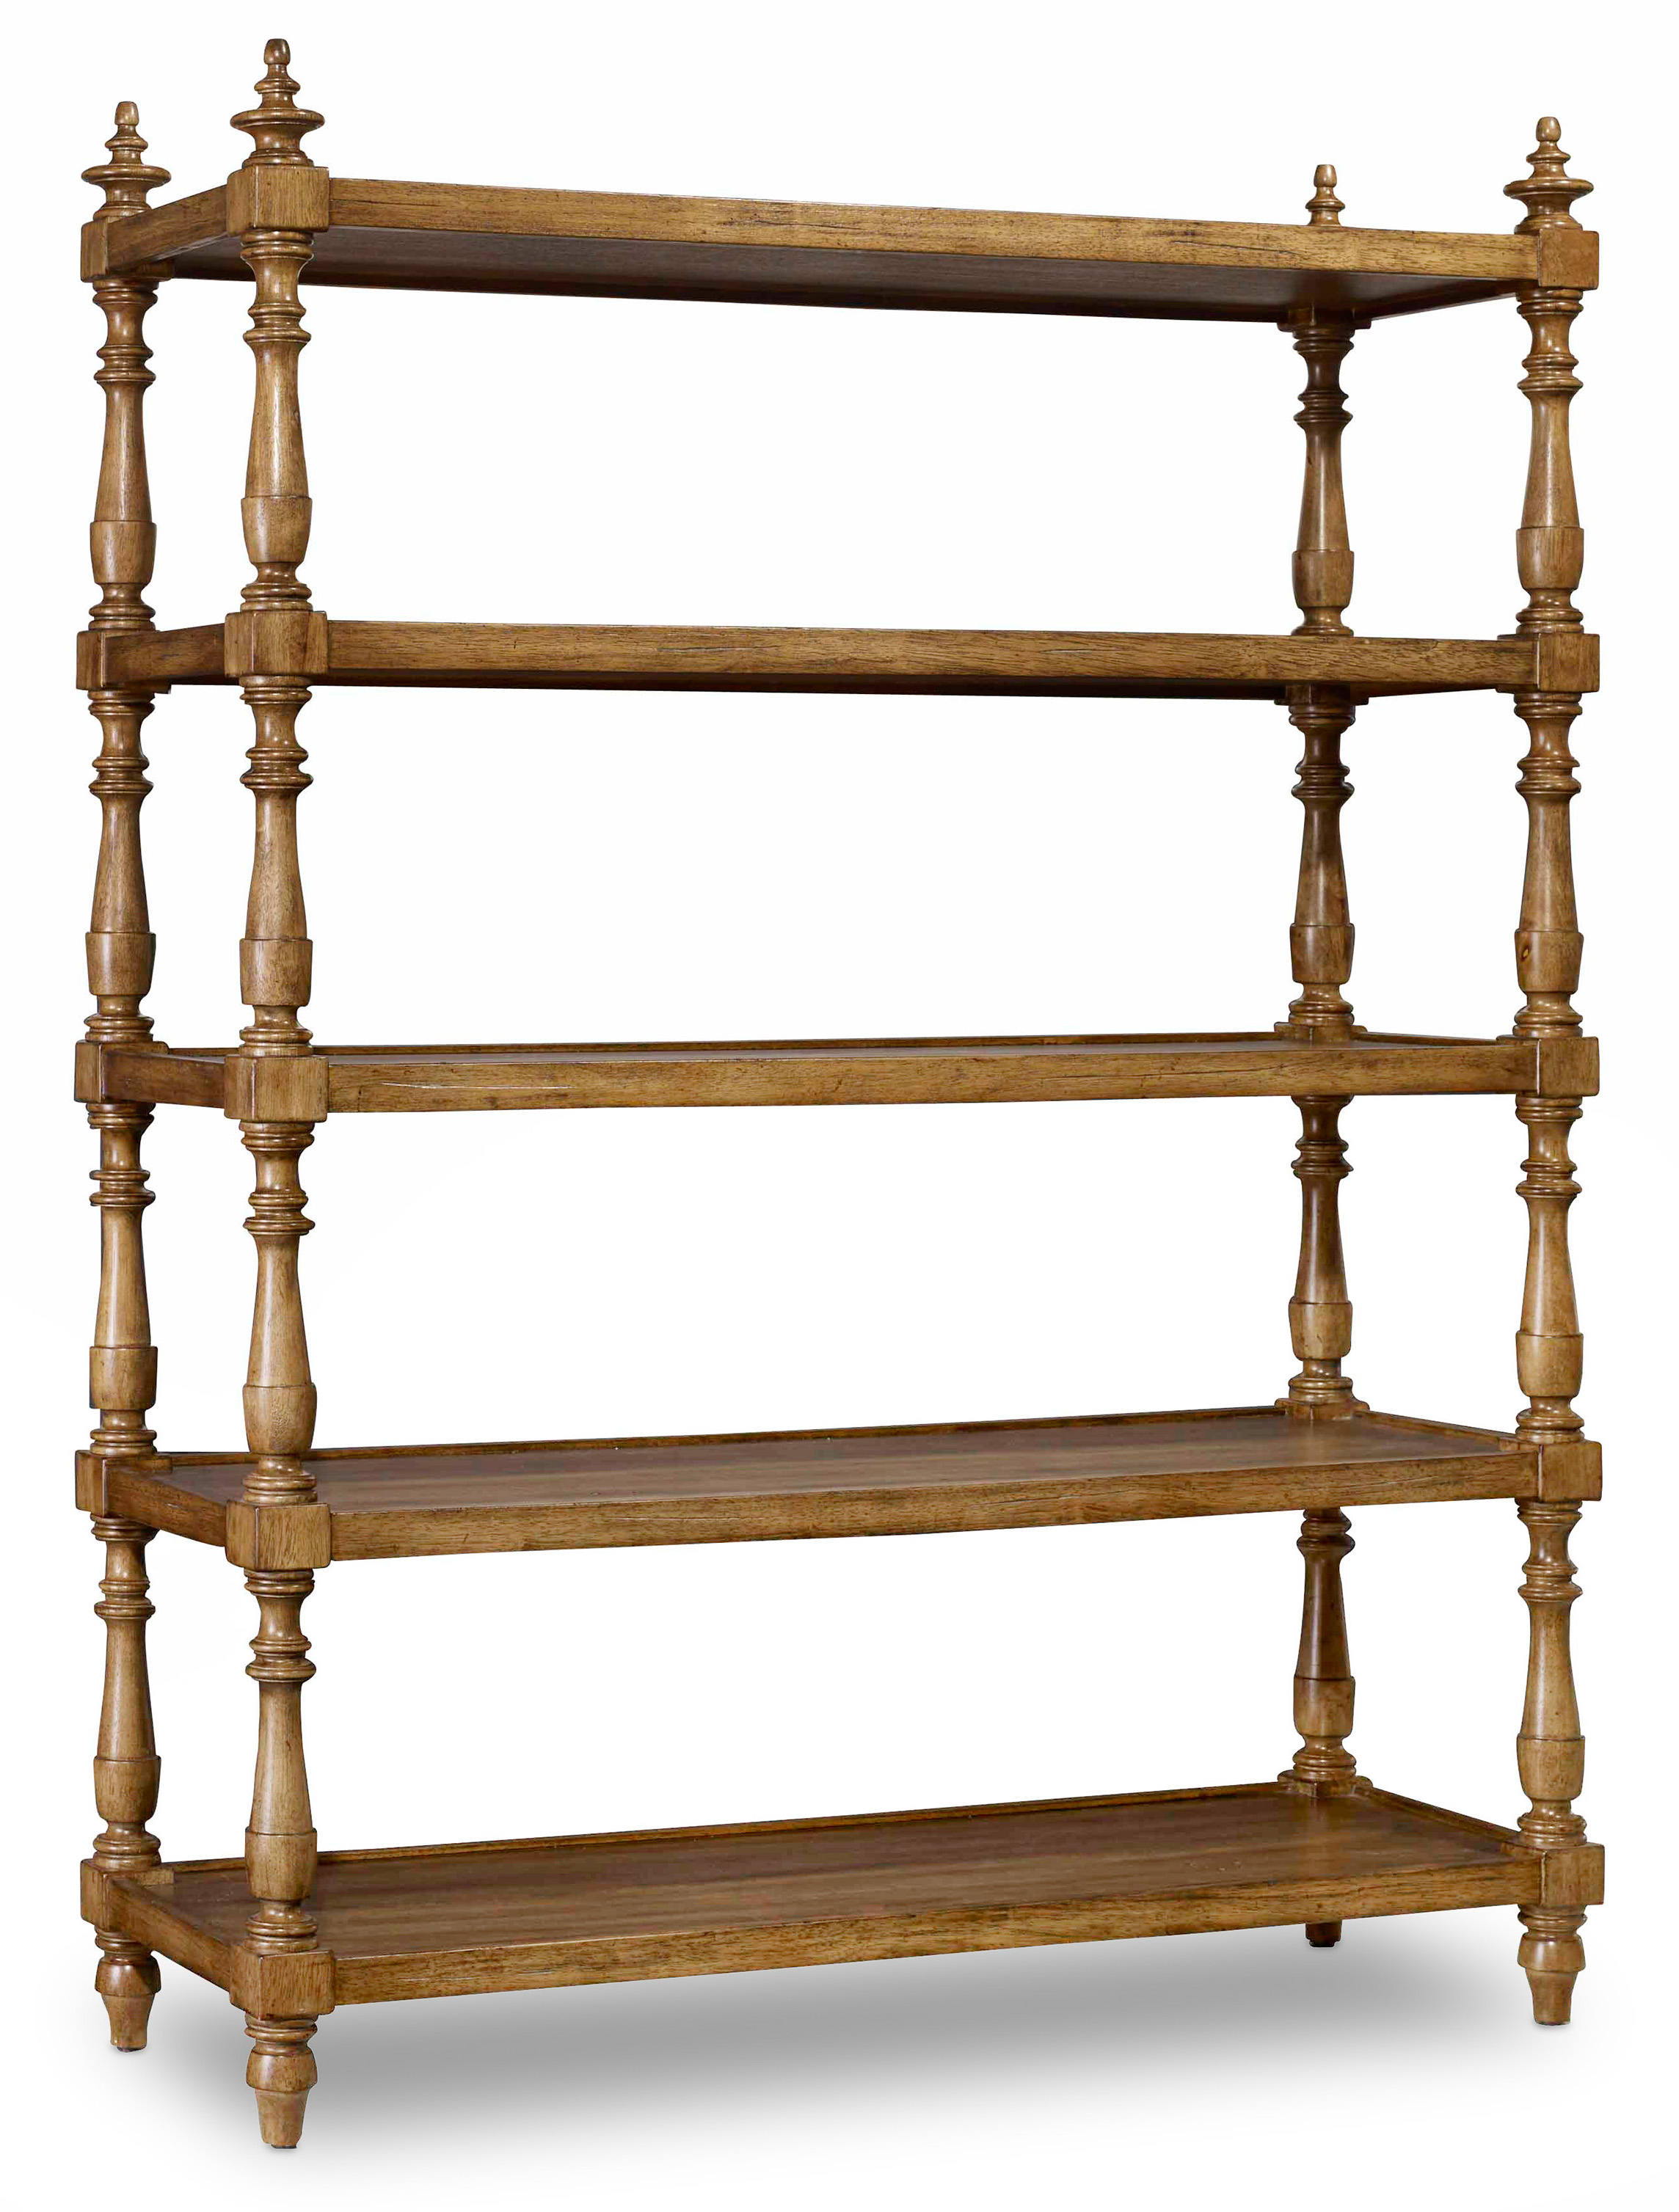 Hamilton Home Sentinel: Toffee Accent Etagere - Item Number: 5447-85003A-TOFFEE